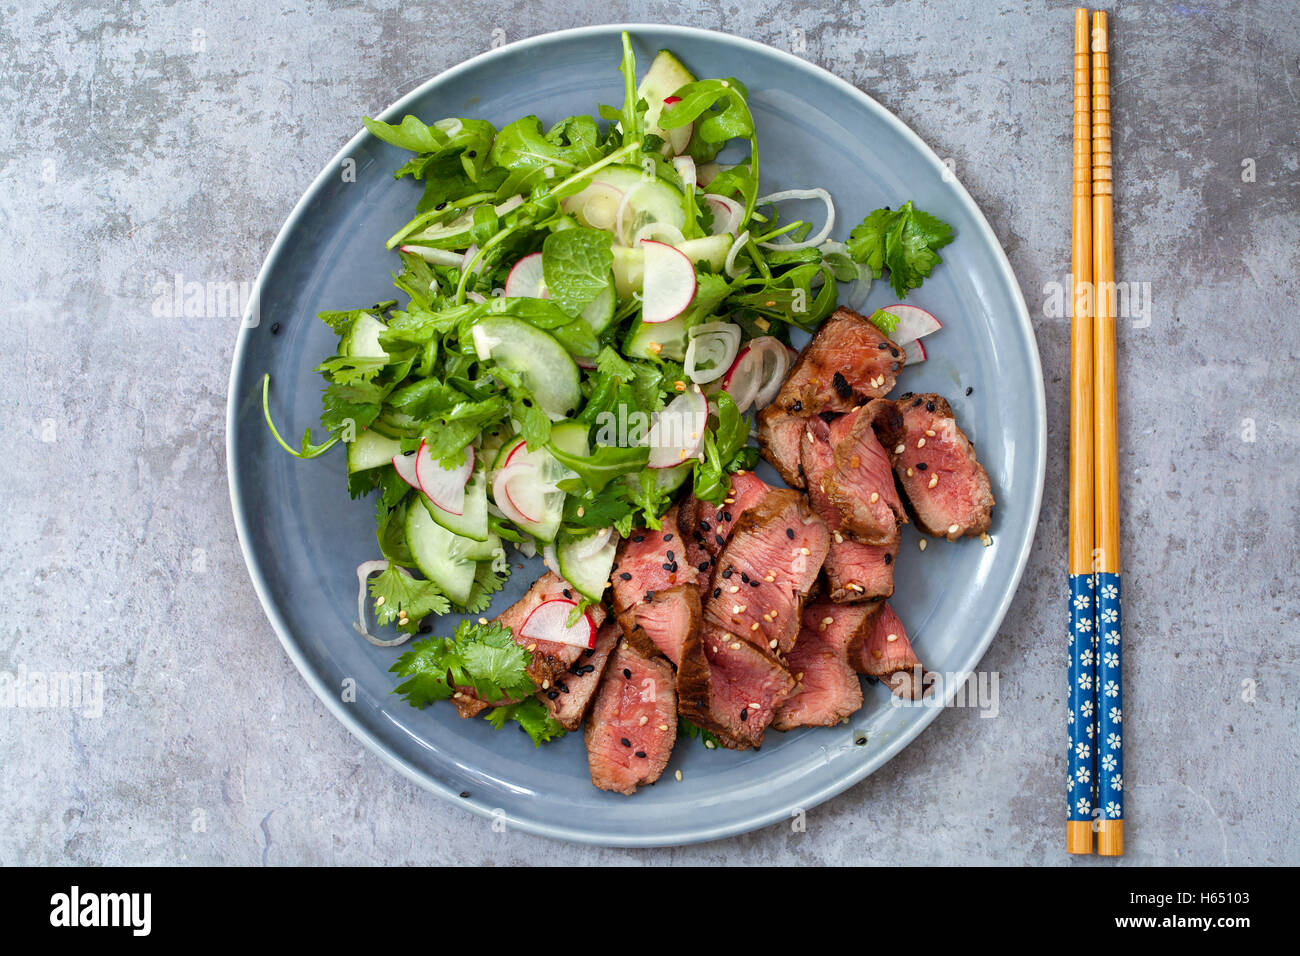 Asian beef salad with cucumber and herb salad and black and white sesame seeds - Stock Image